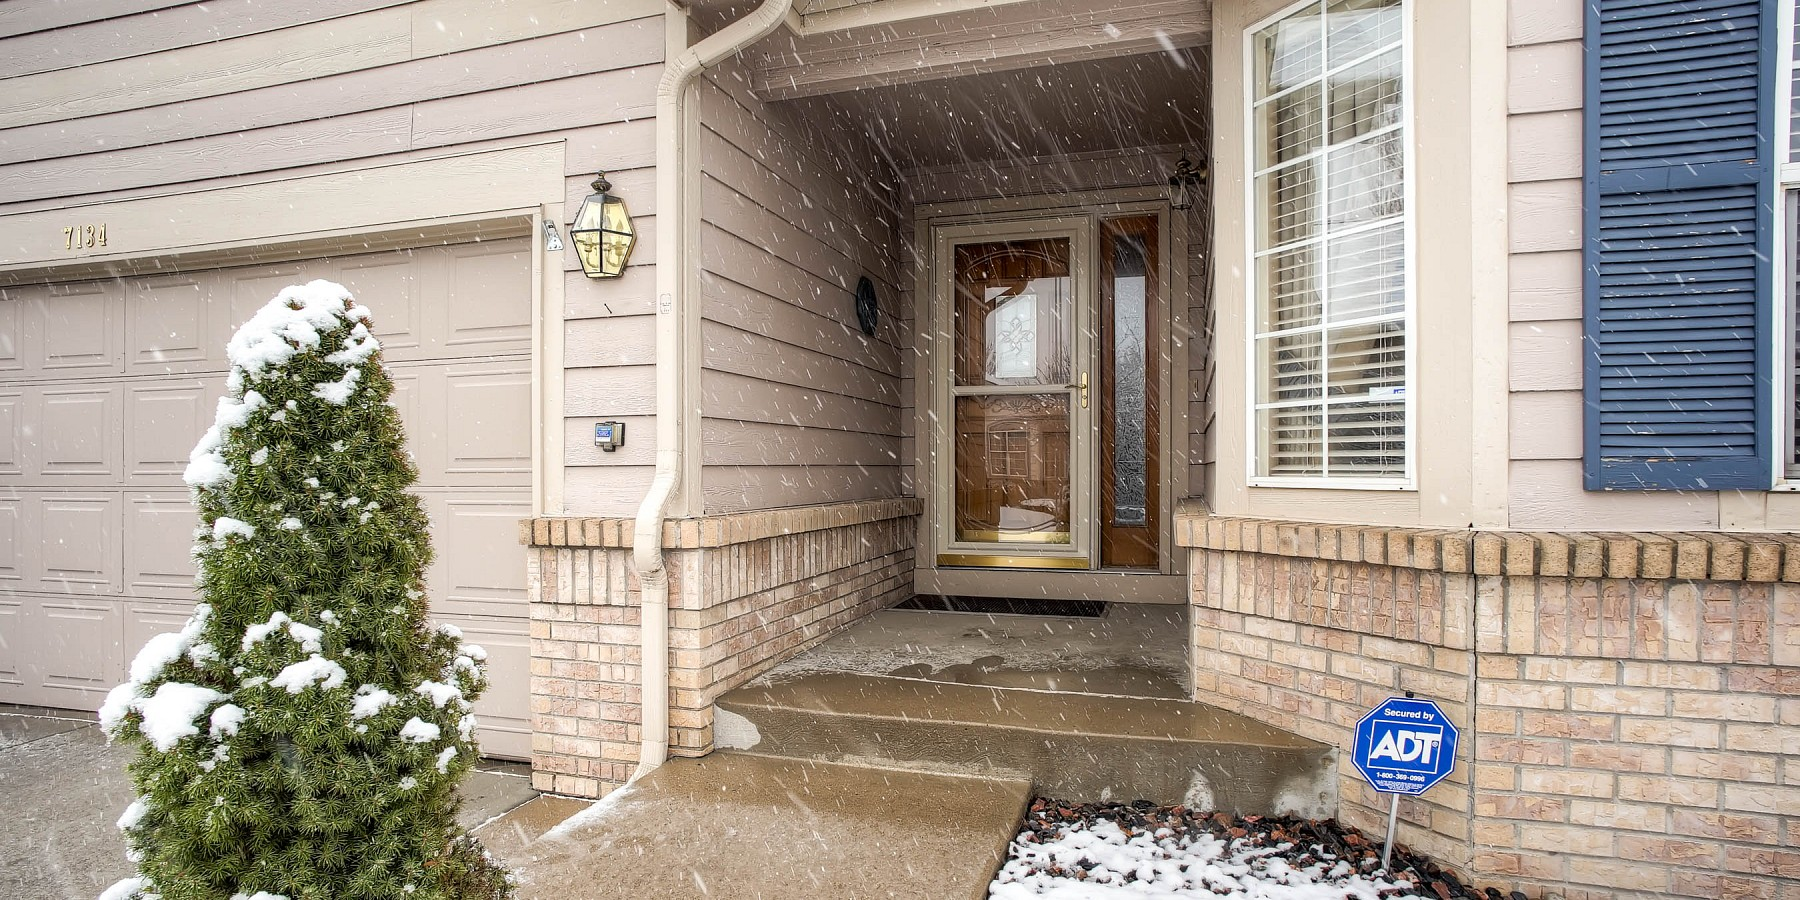 7134 West Arlington Way, Littleton, CO 80123